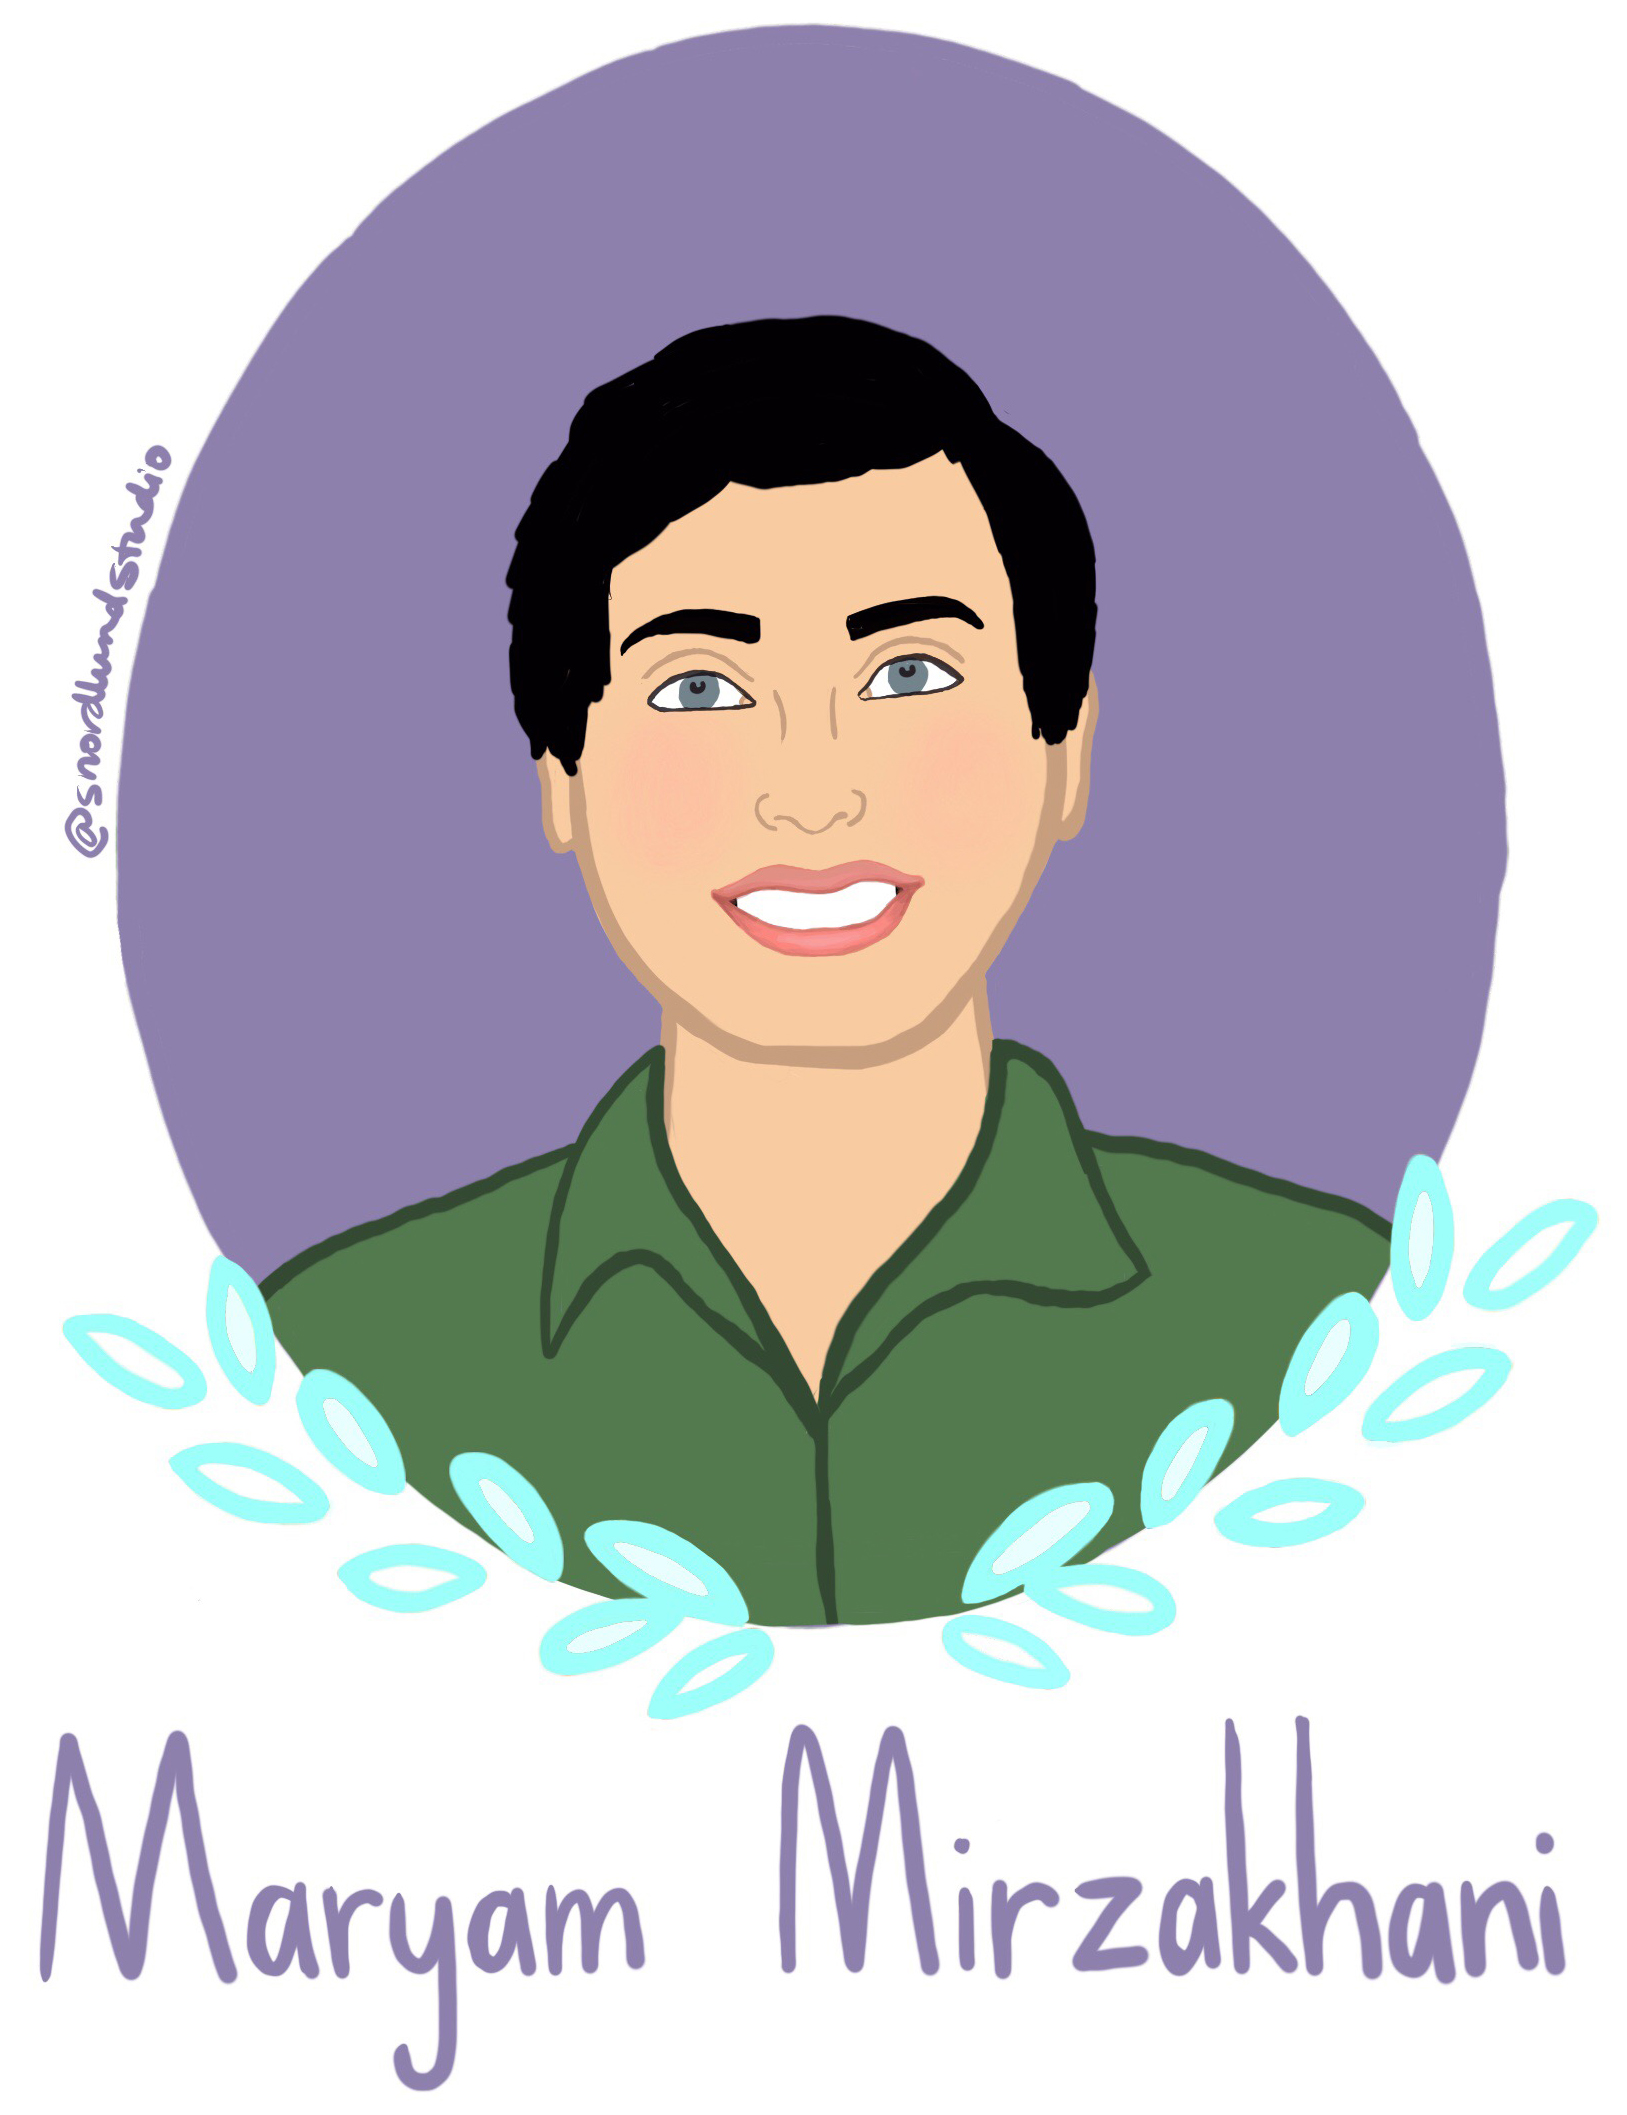 "34. Maryam Mirzakhani - Maryam Mirzakhani (1977-2017) was a world-renowned mathematician and professor. She is the only woman to ever receive a Fields Medal. Mirzakhani believed in ""crossing the imaginary boundaries people set up between different fields."" Her mathematic process involved doodling. She stated, ""the process of drawing something helps you somehow stay connected."""